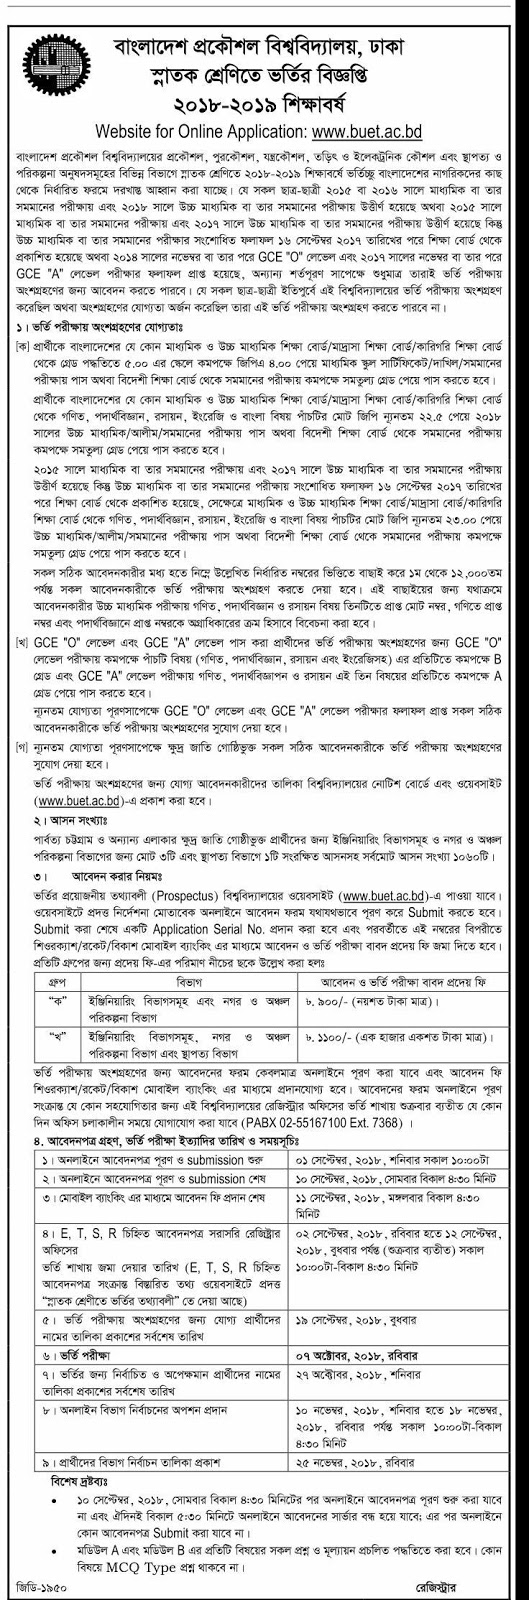 Chittagong University of Engineering and Technology (CUET) Admission Circular 2018-2019